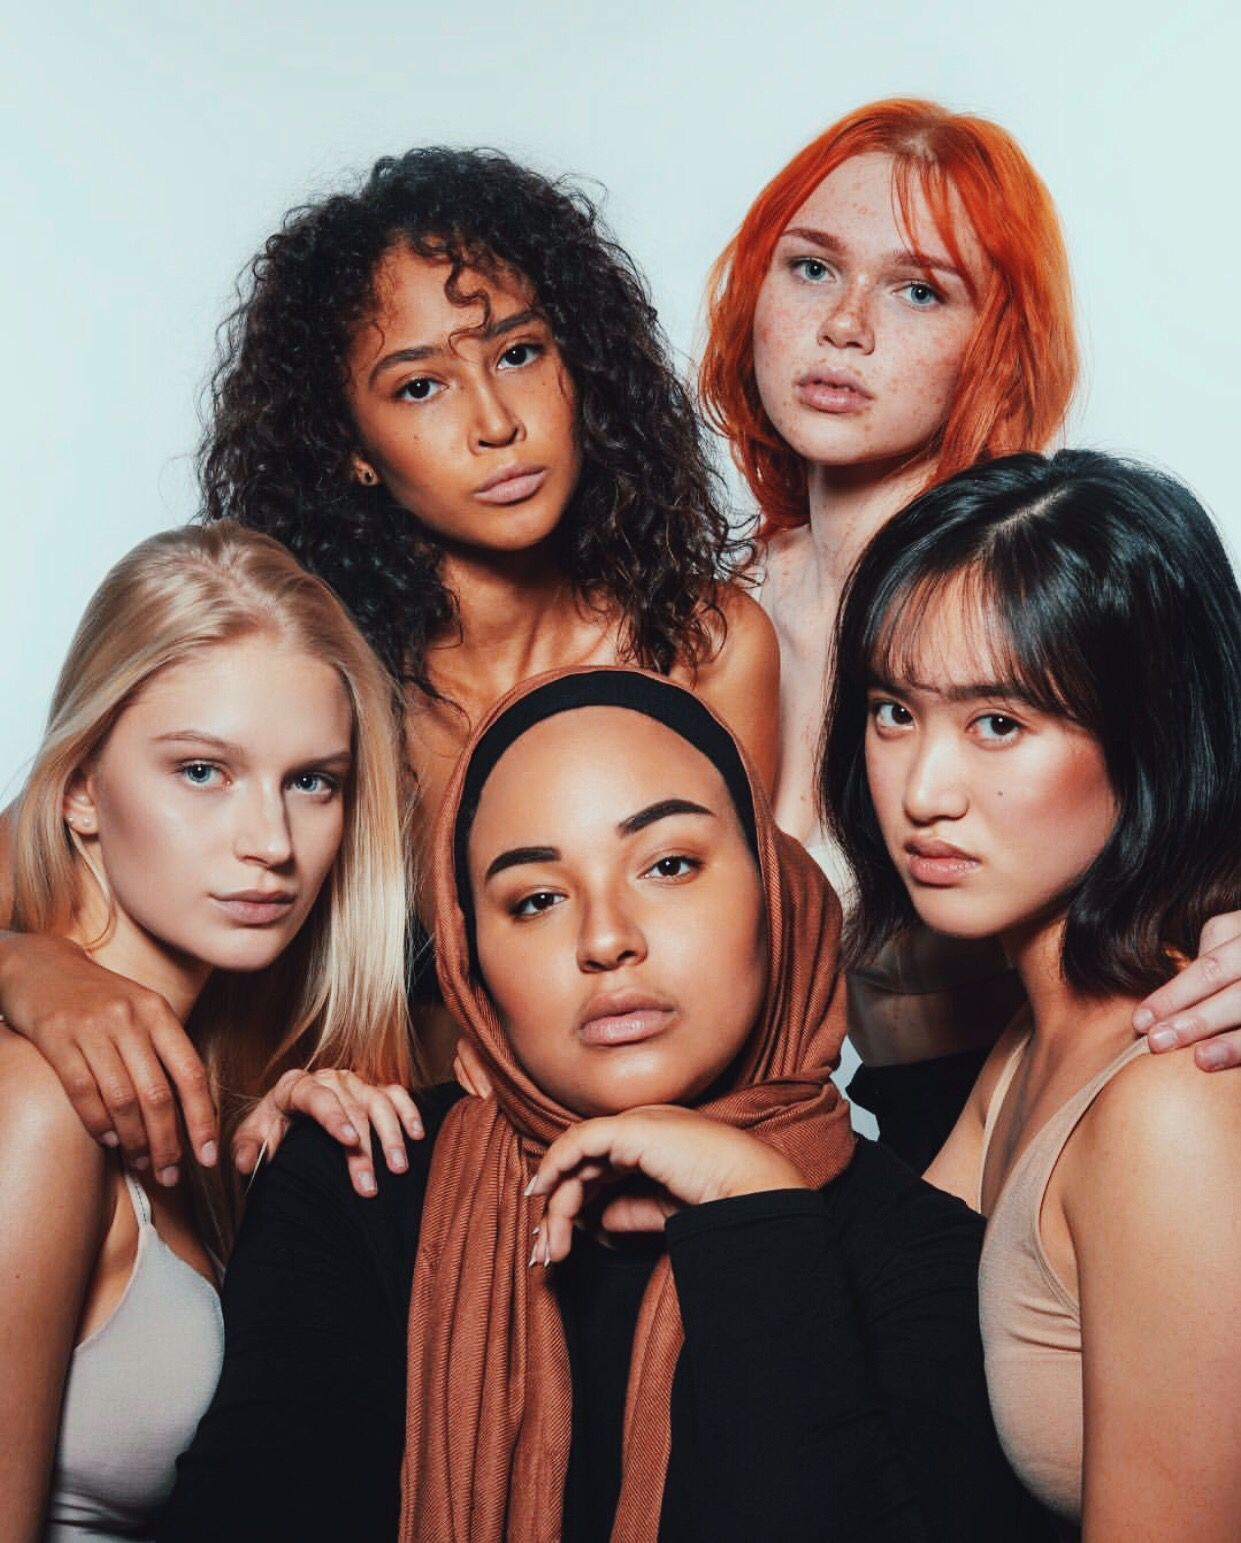 #diversity #multicolor #photography #portrait #ginger #muslim #blonde #asia #blackwomenmodels